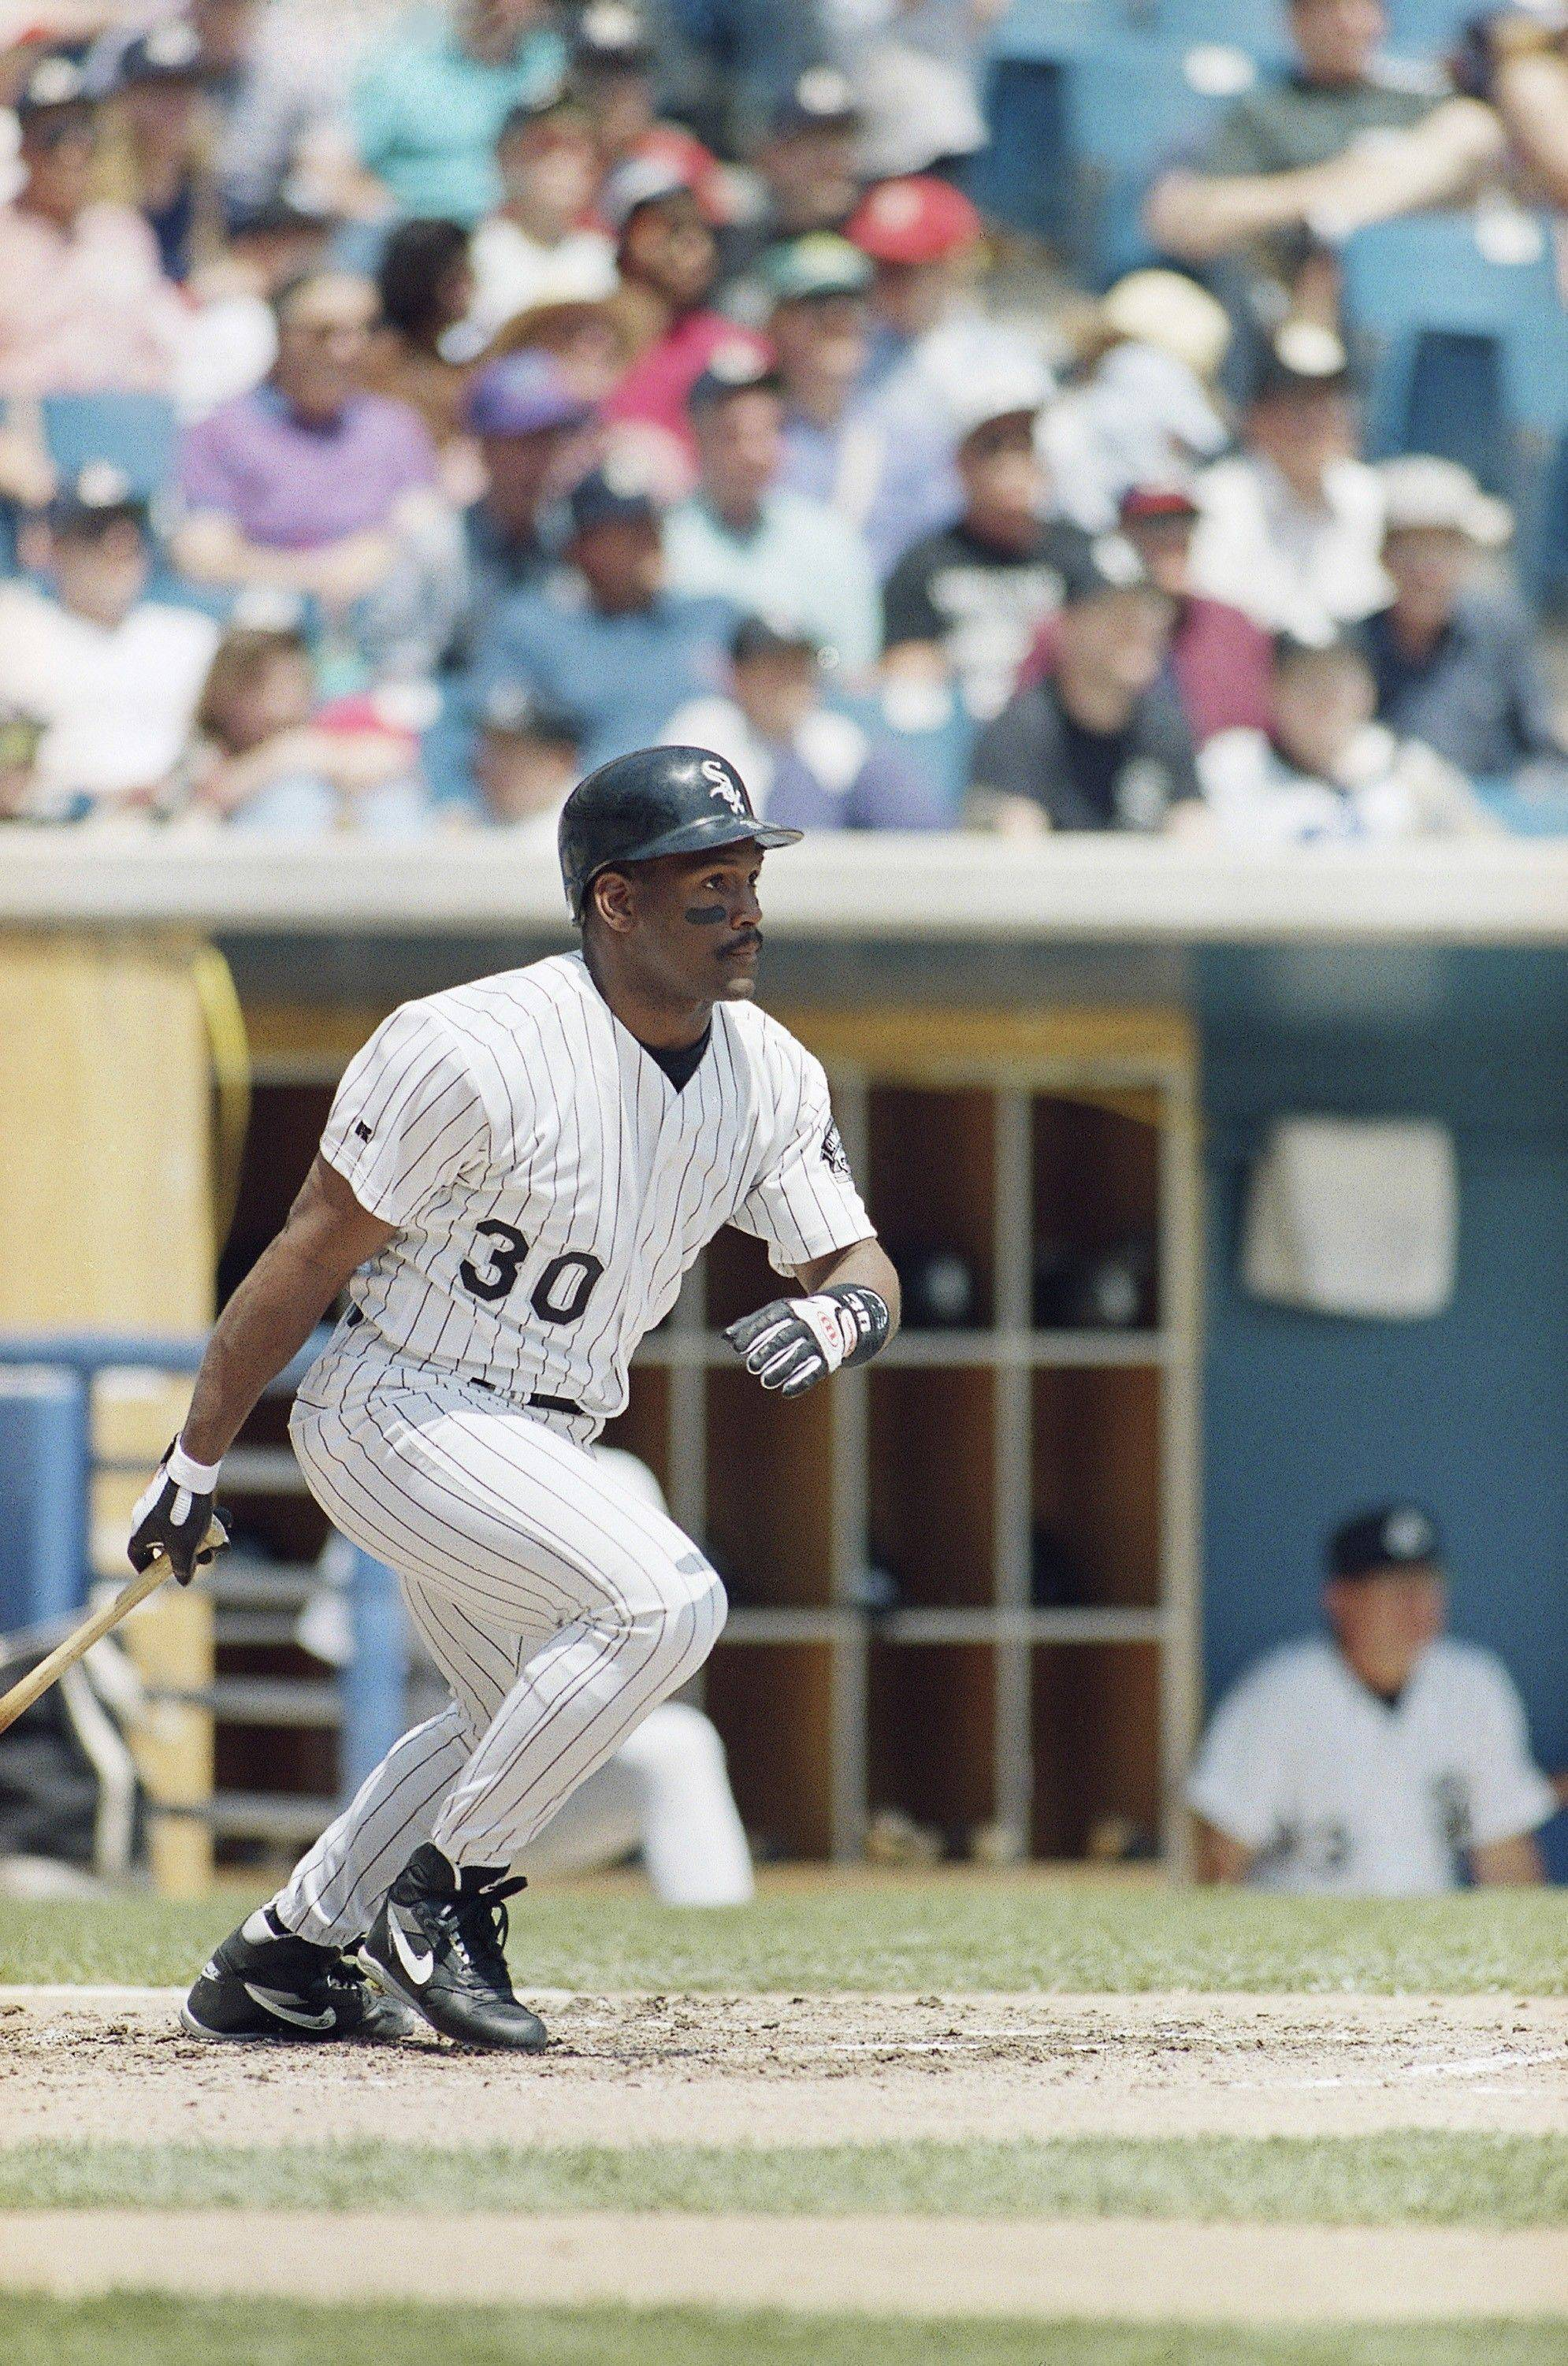 Chicago White Sox Tim Raines heads to first with a lead off single against the Oakland Athletics during the first inning in Chicago , May 22, 1993. Raines was reinstated after being on the disabled list since rupturing a ligament in his right thumb on April 9.